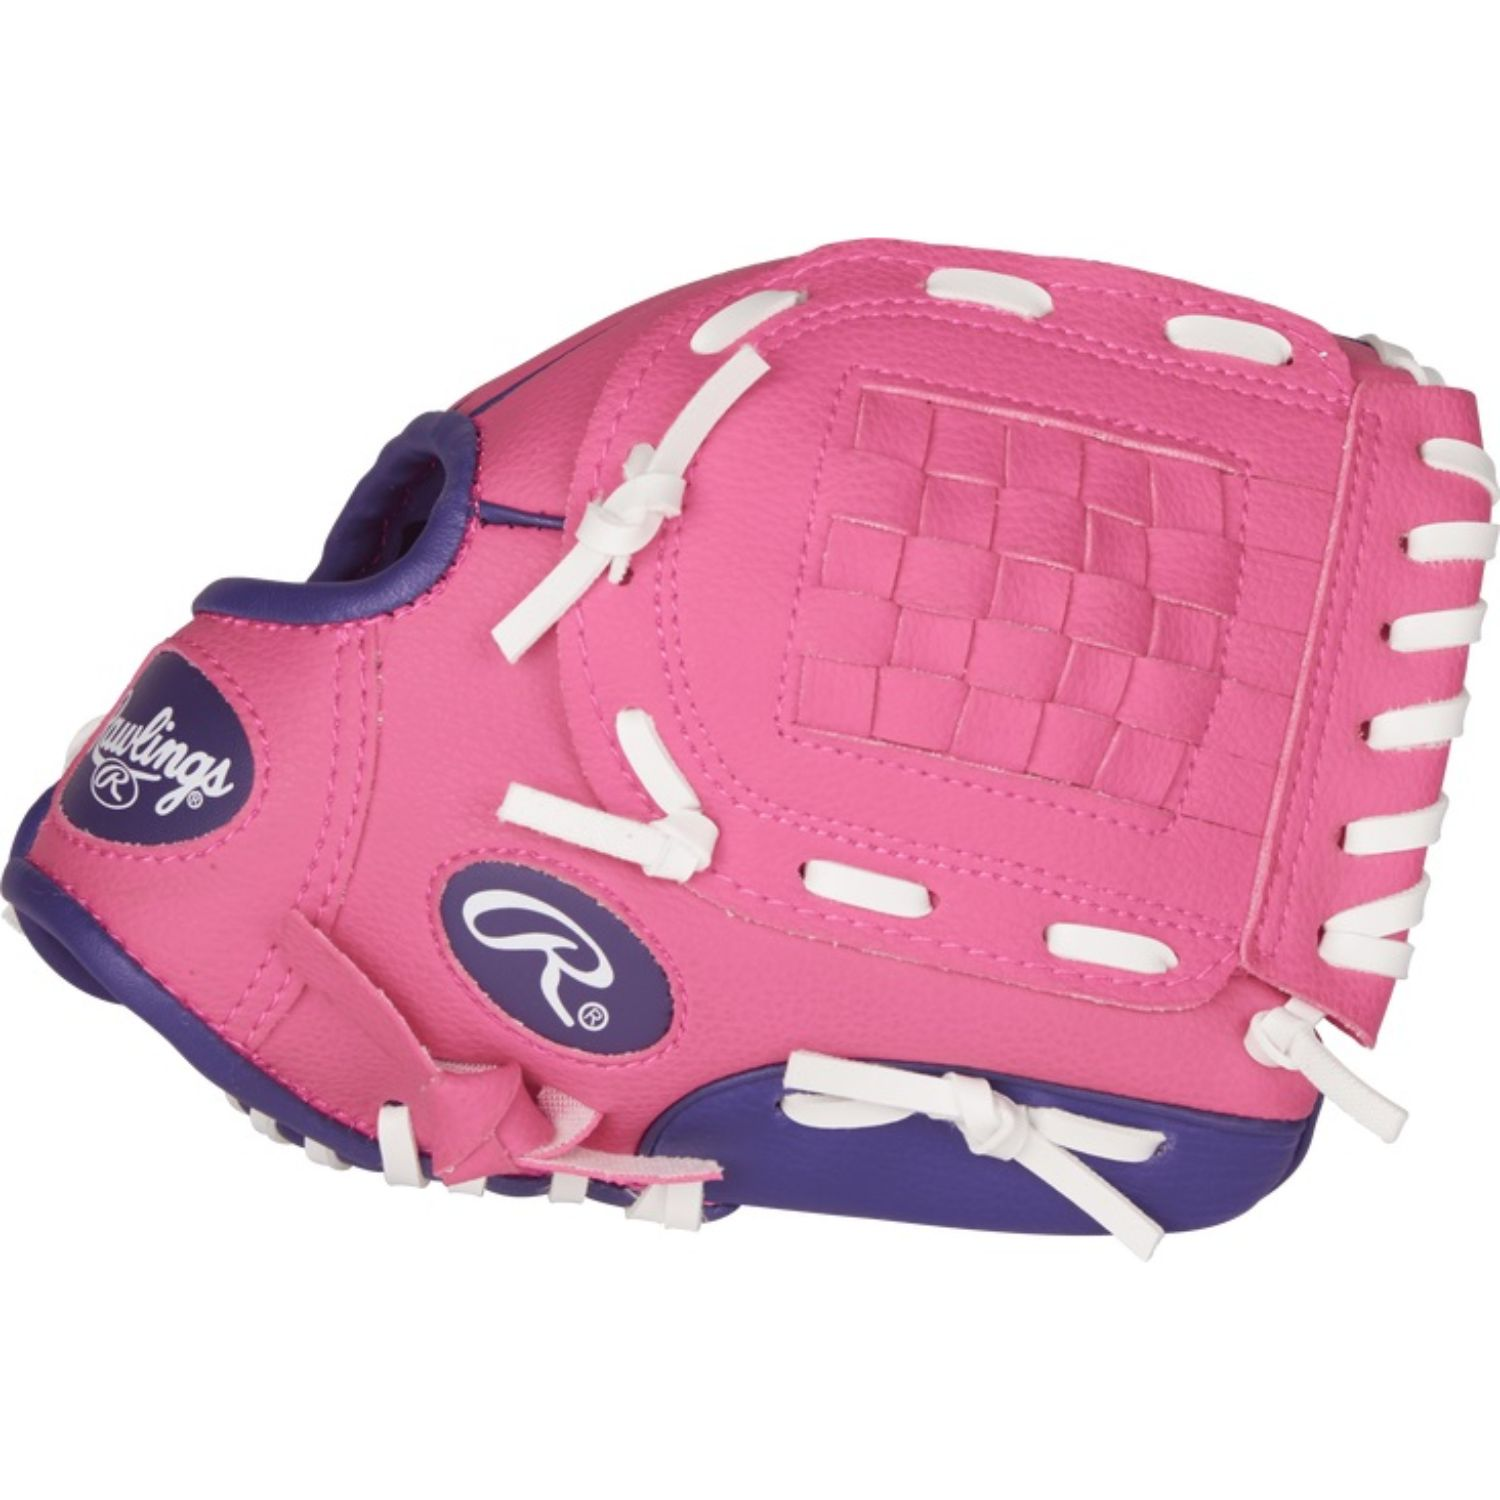 Rawlings Players 9 In Youth Softball Glove LH